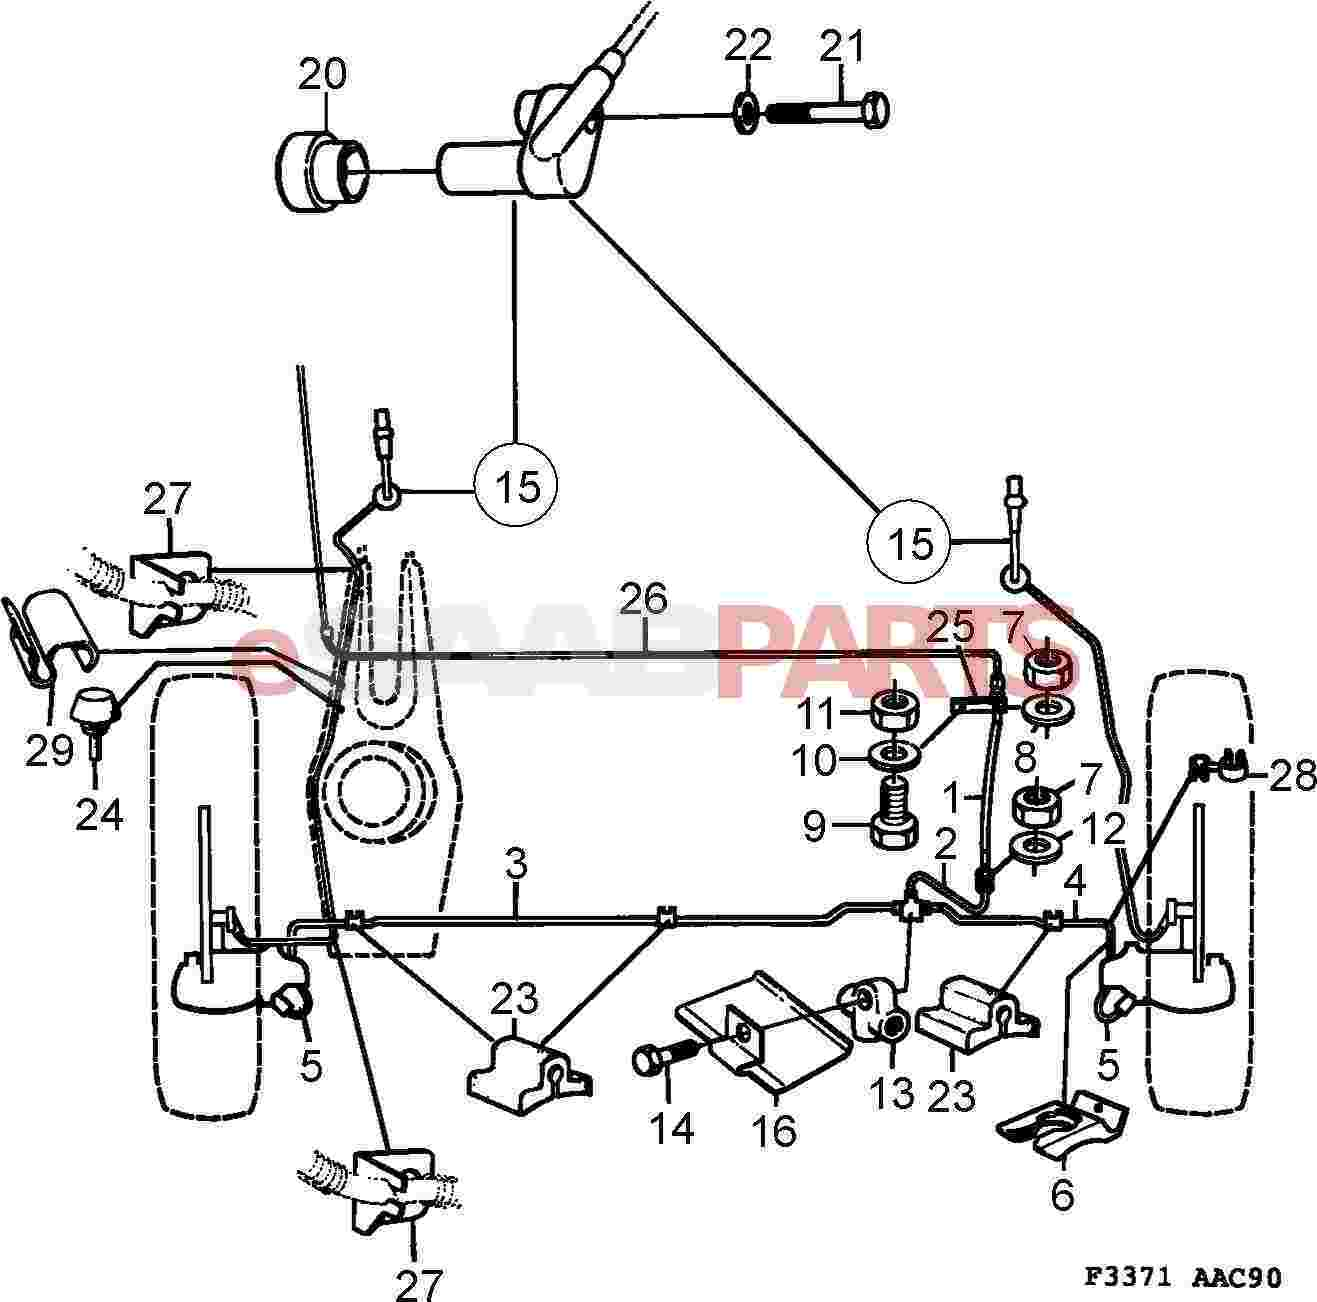 Saab 900 Diagram Showing Brake Line